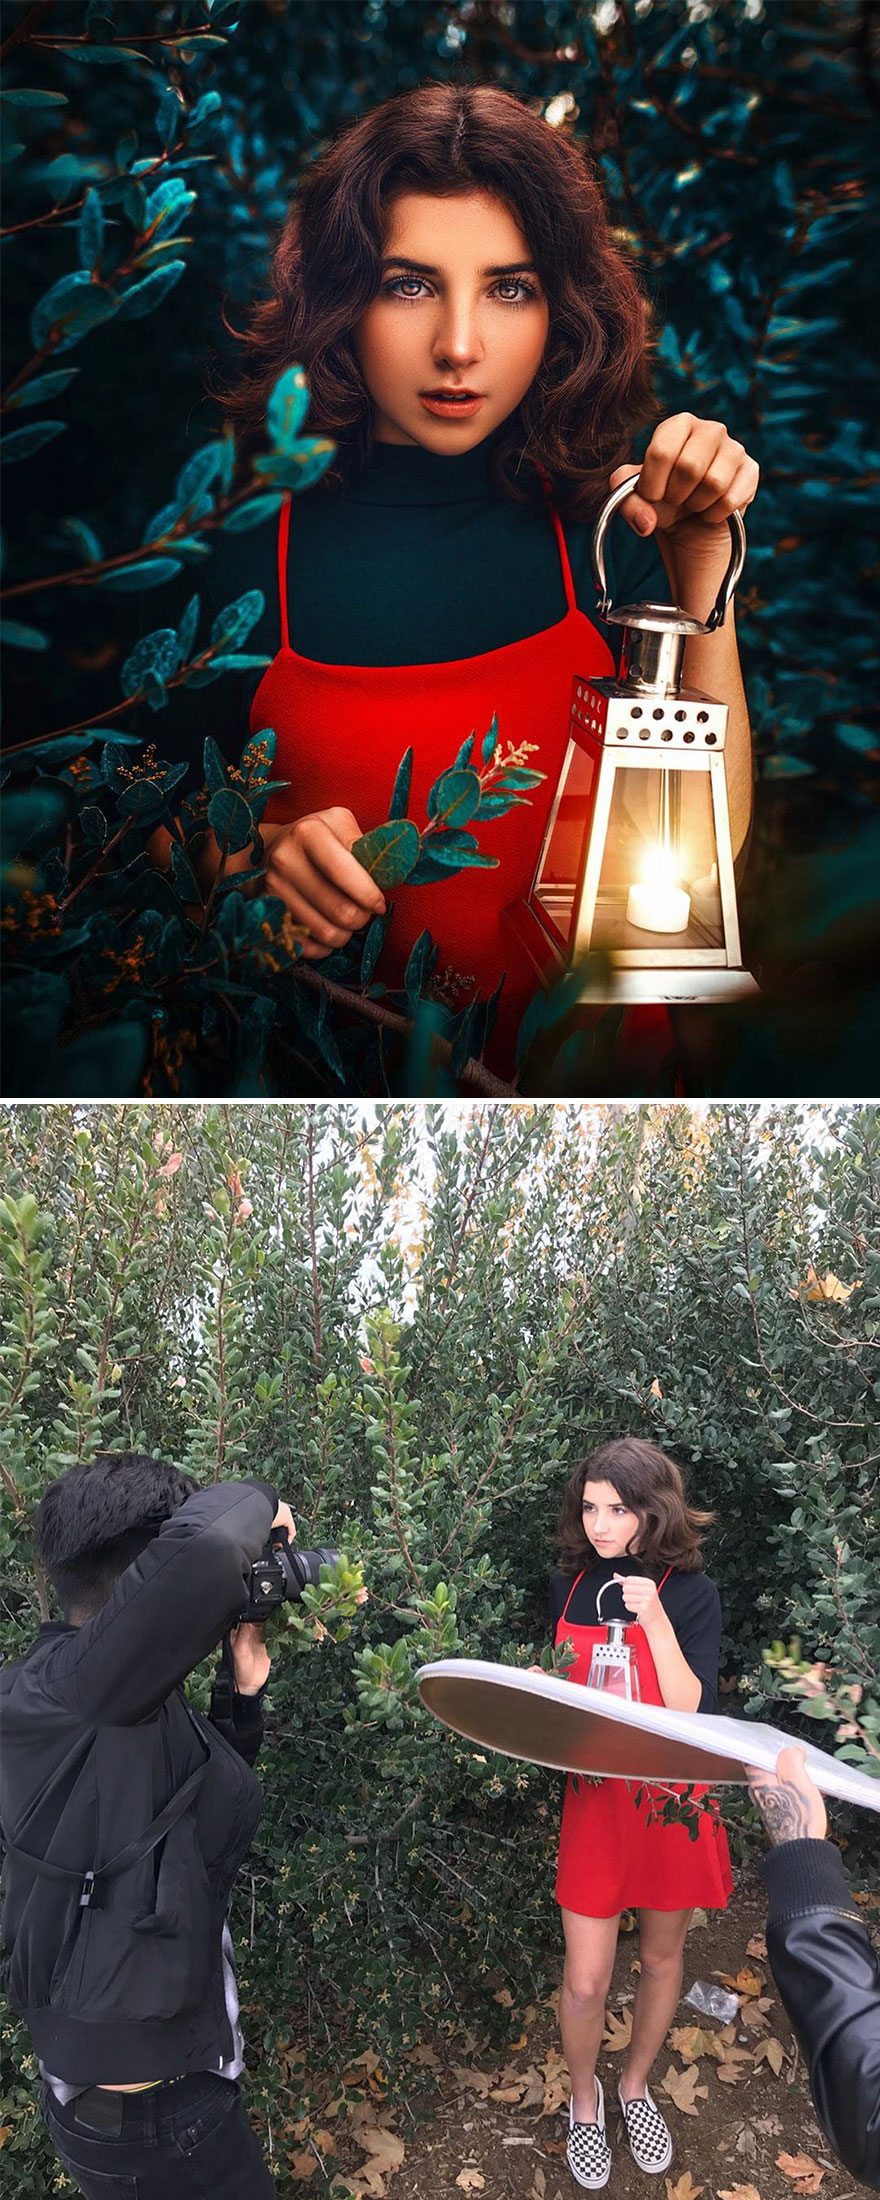 Photographer Shows Behind The Scenes Of Perfect Edits Of Your Photos